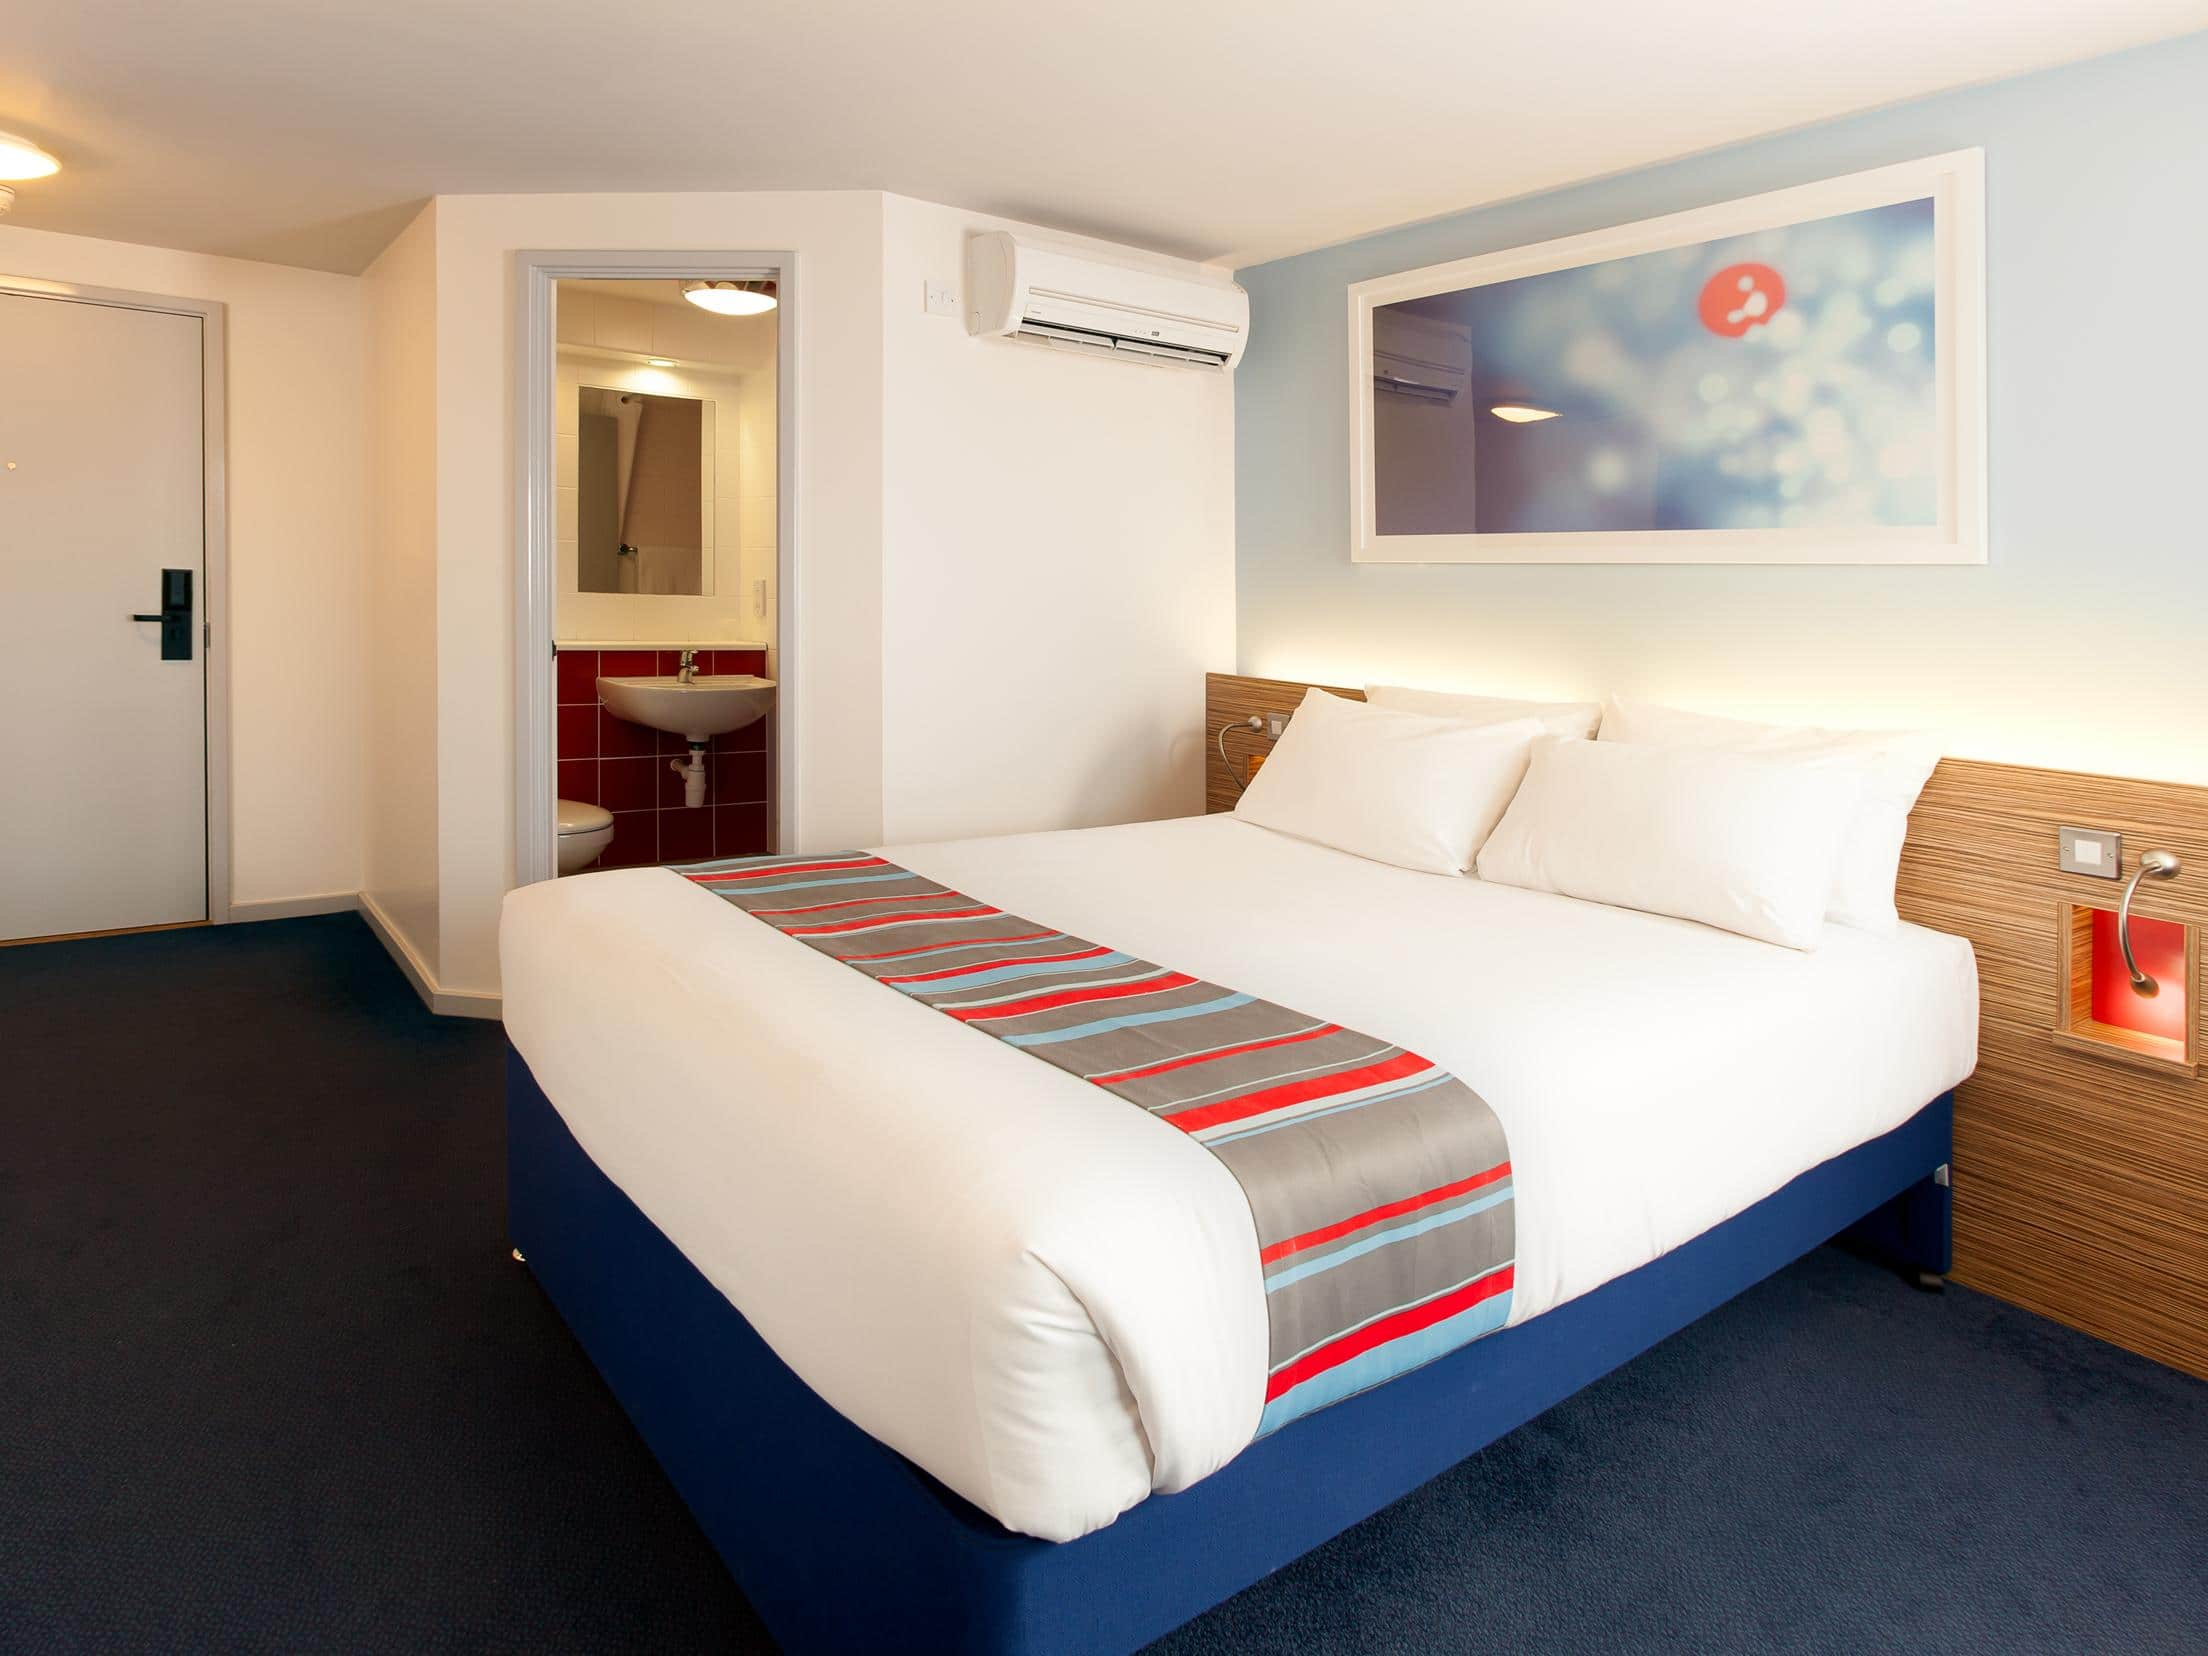 Travelodge Macclesfield Central Hotel Macclesfield Central Hotels - Travelodge location map uk